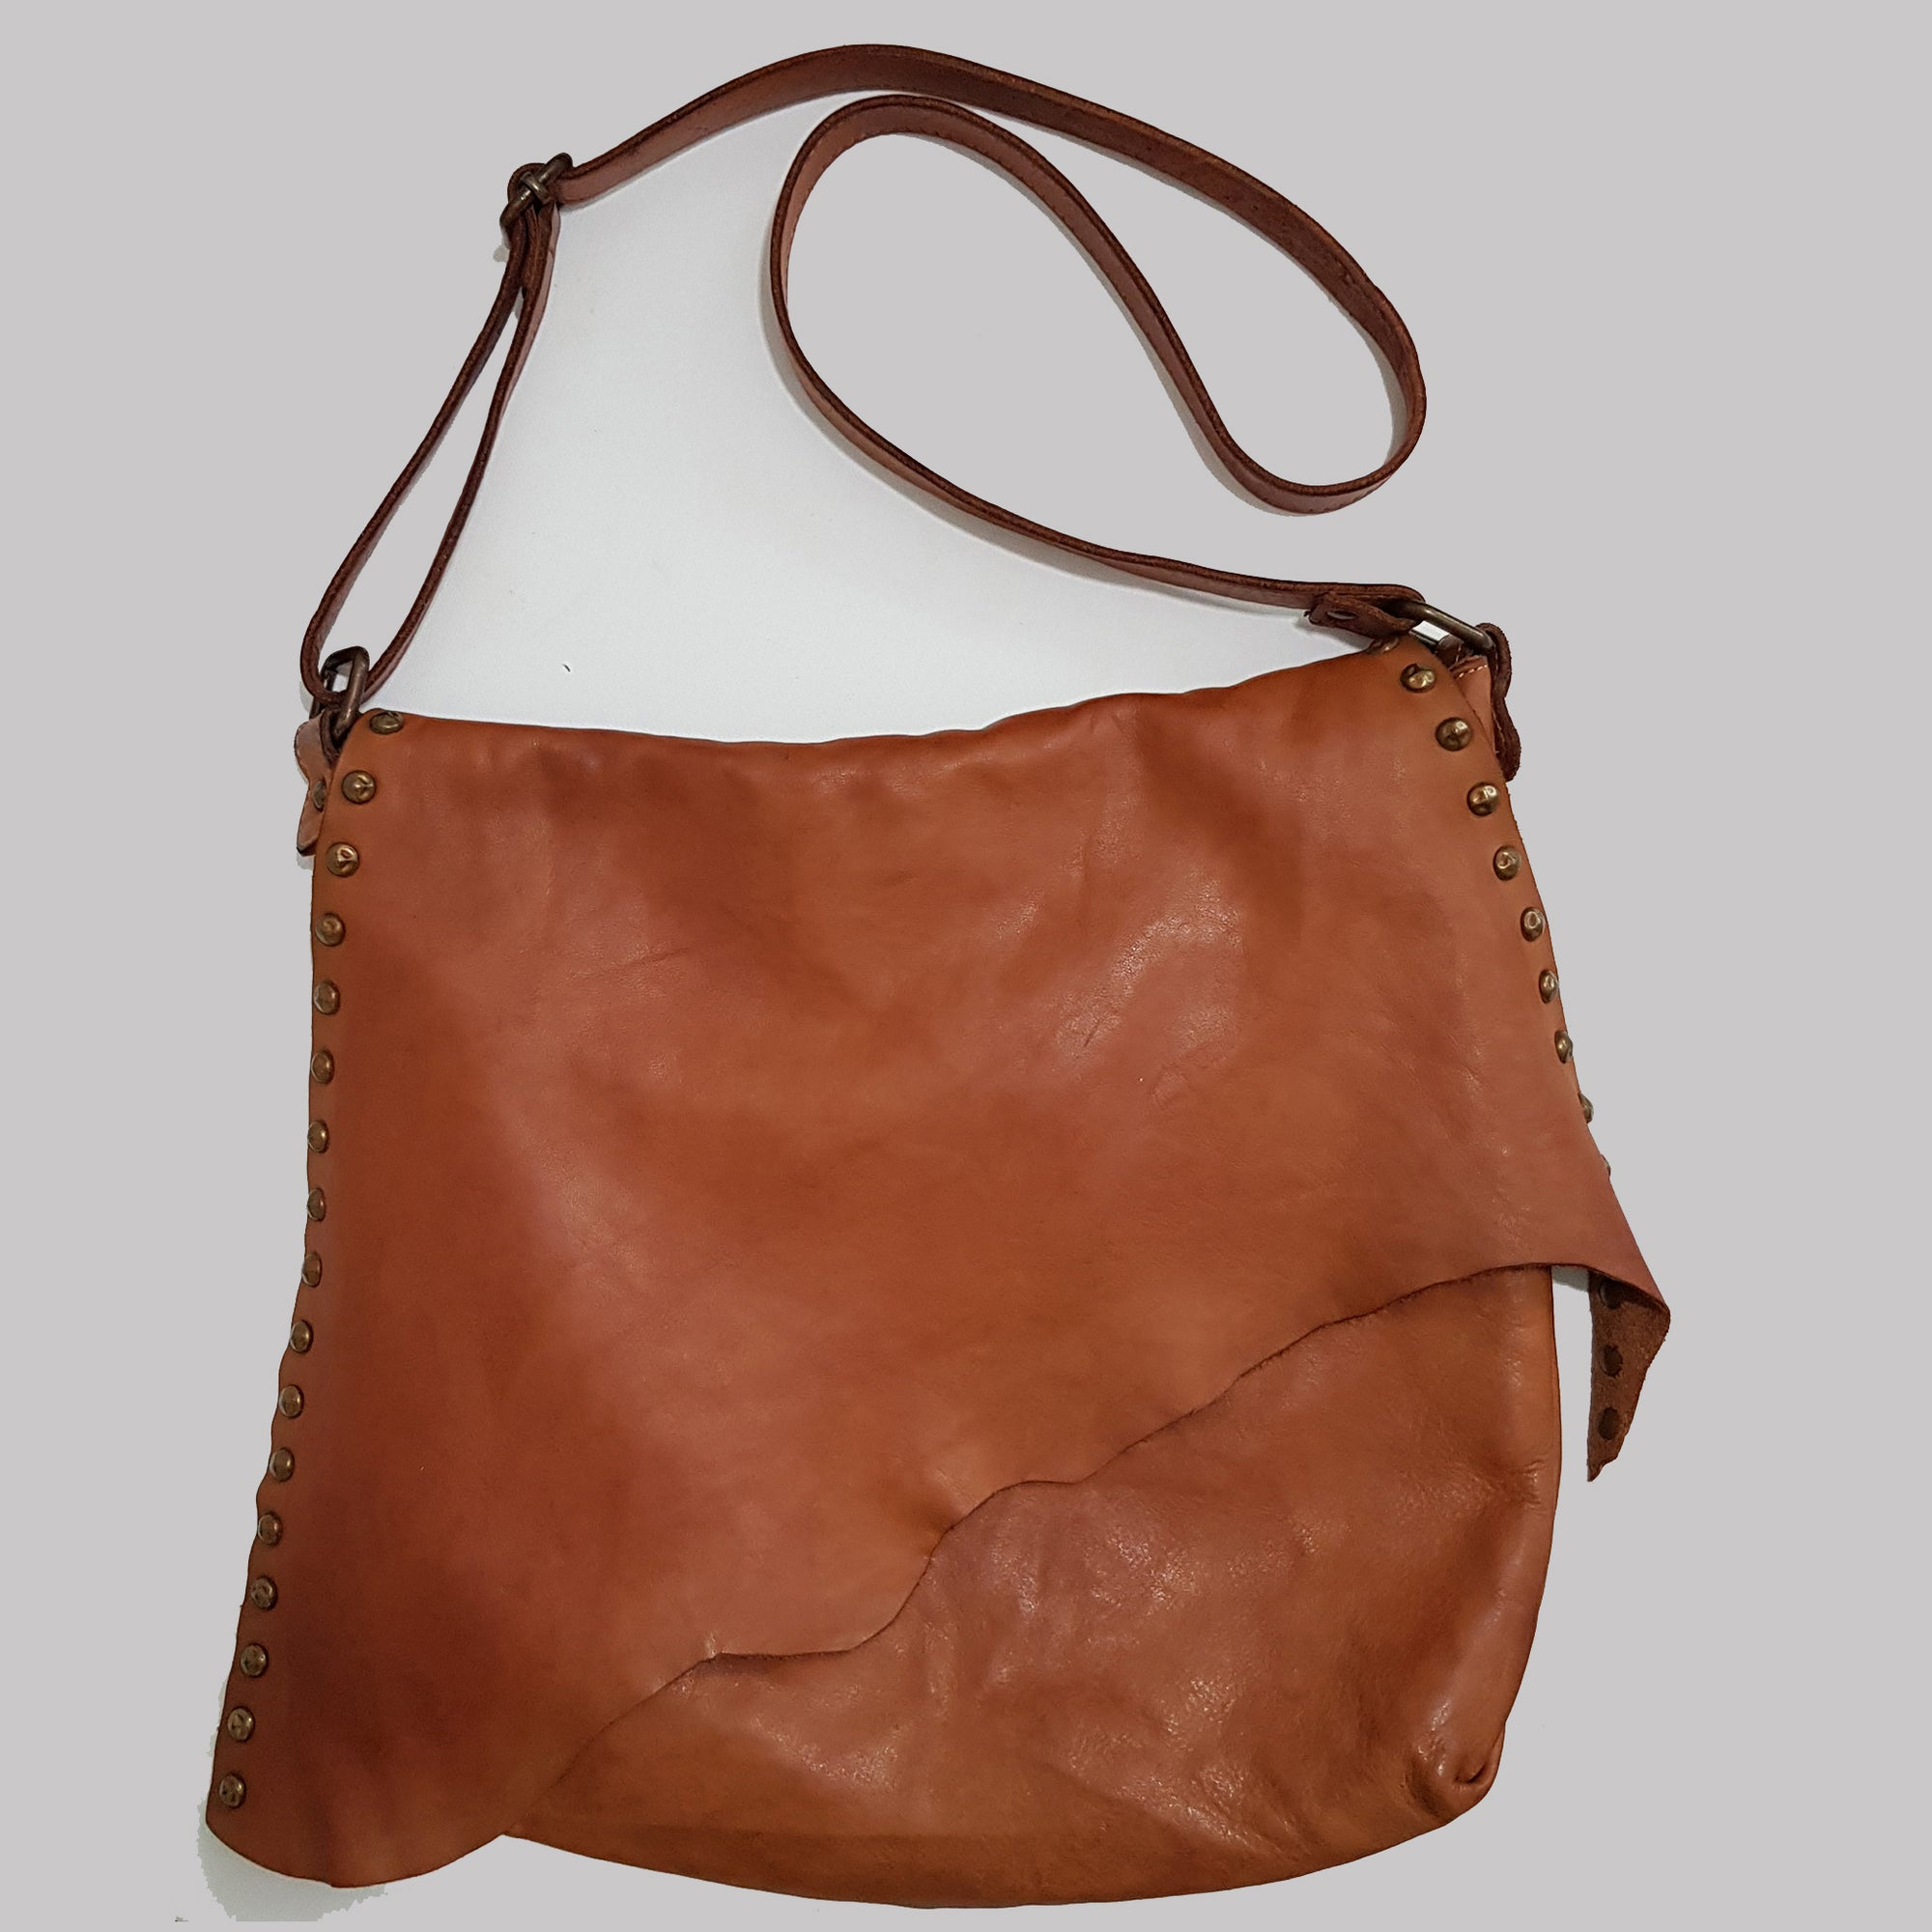 Washed Soft Leather Crossbody Bag with Studs